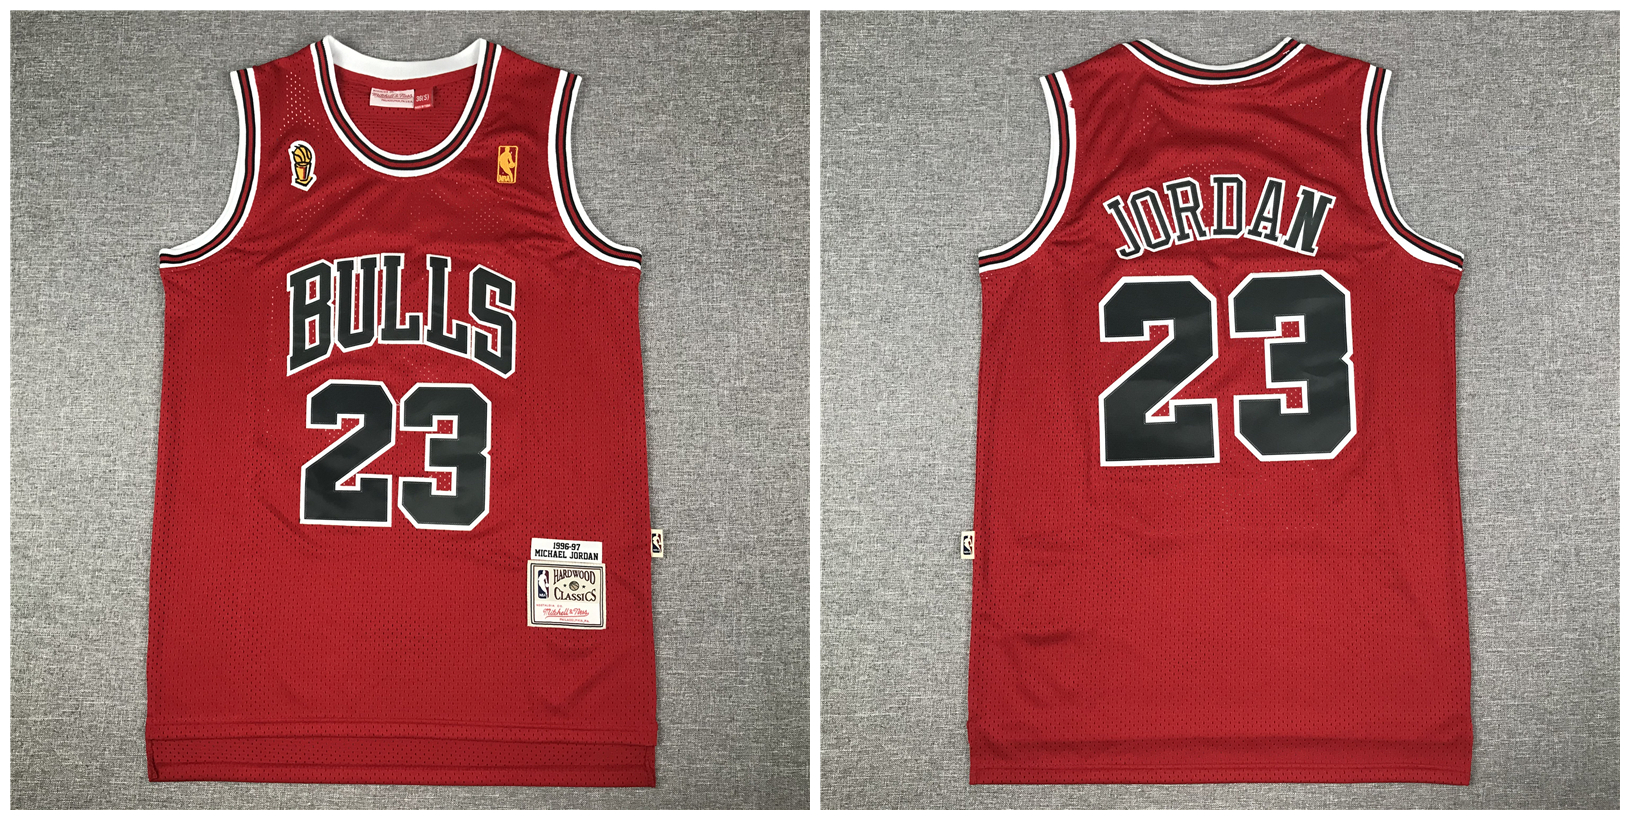 Bulls 23 Michael Jordan Red NBA Champions Patch 1996-97 Hardwood Classics Jersey